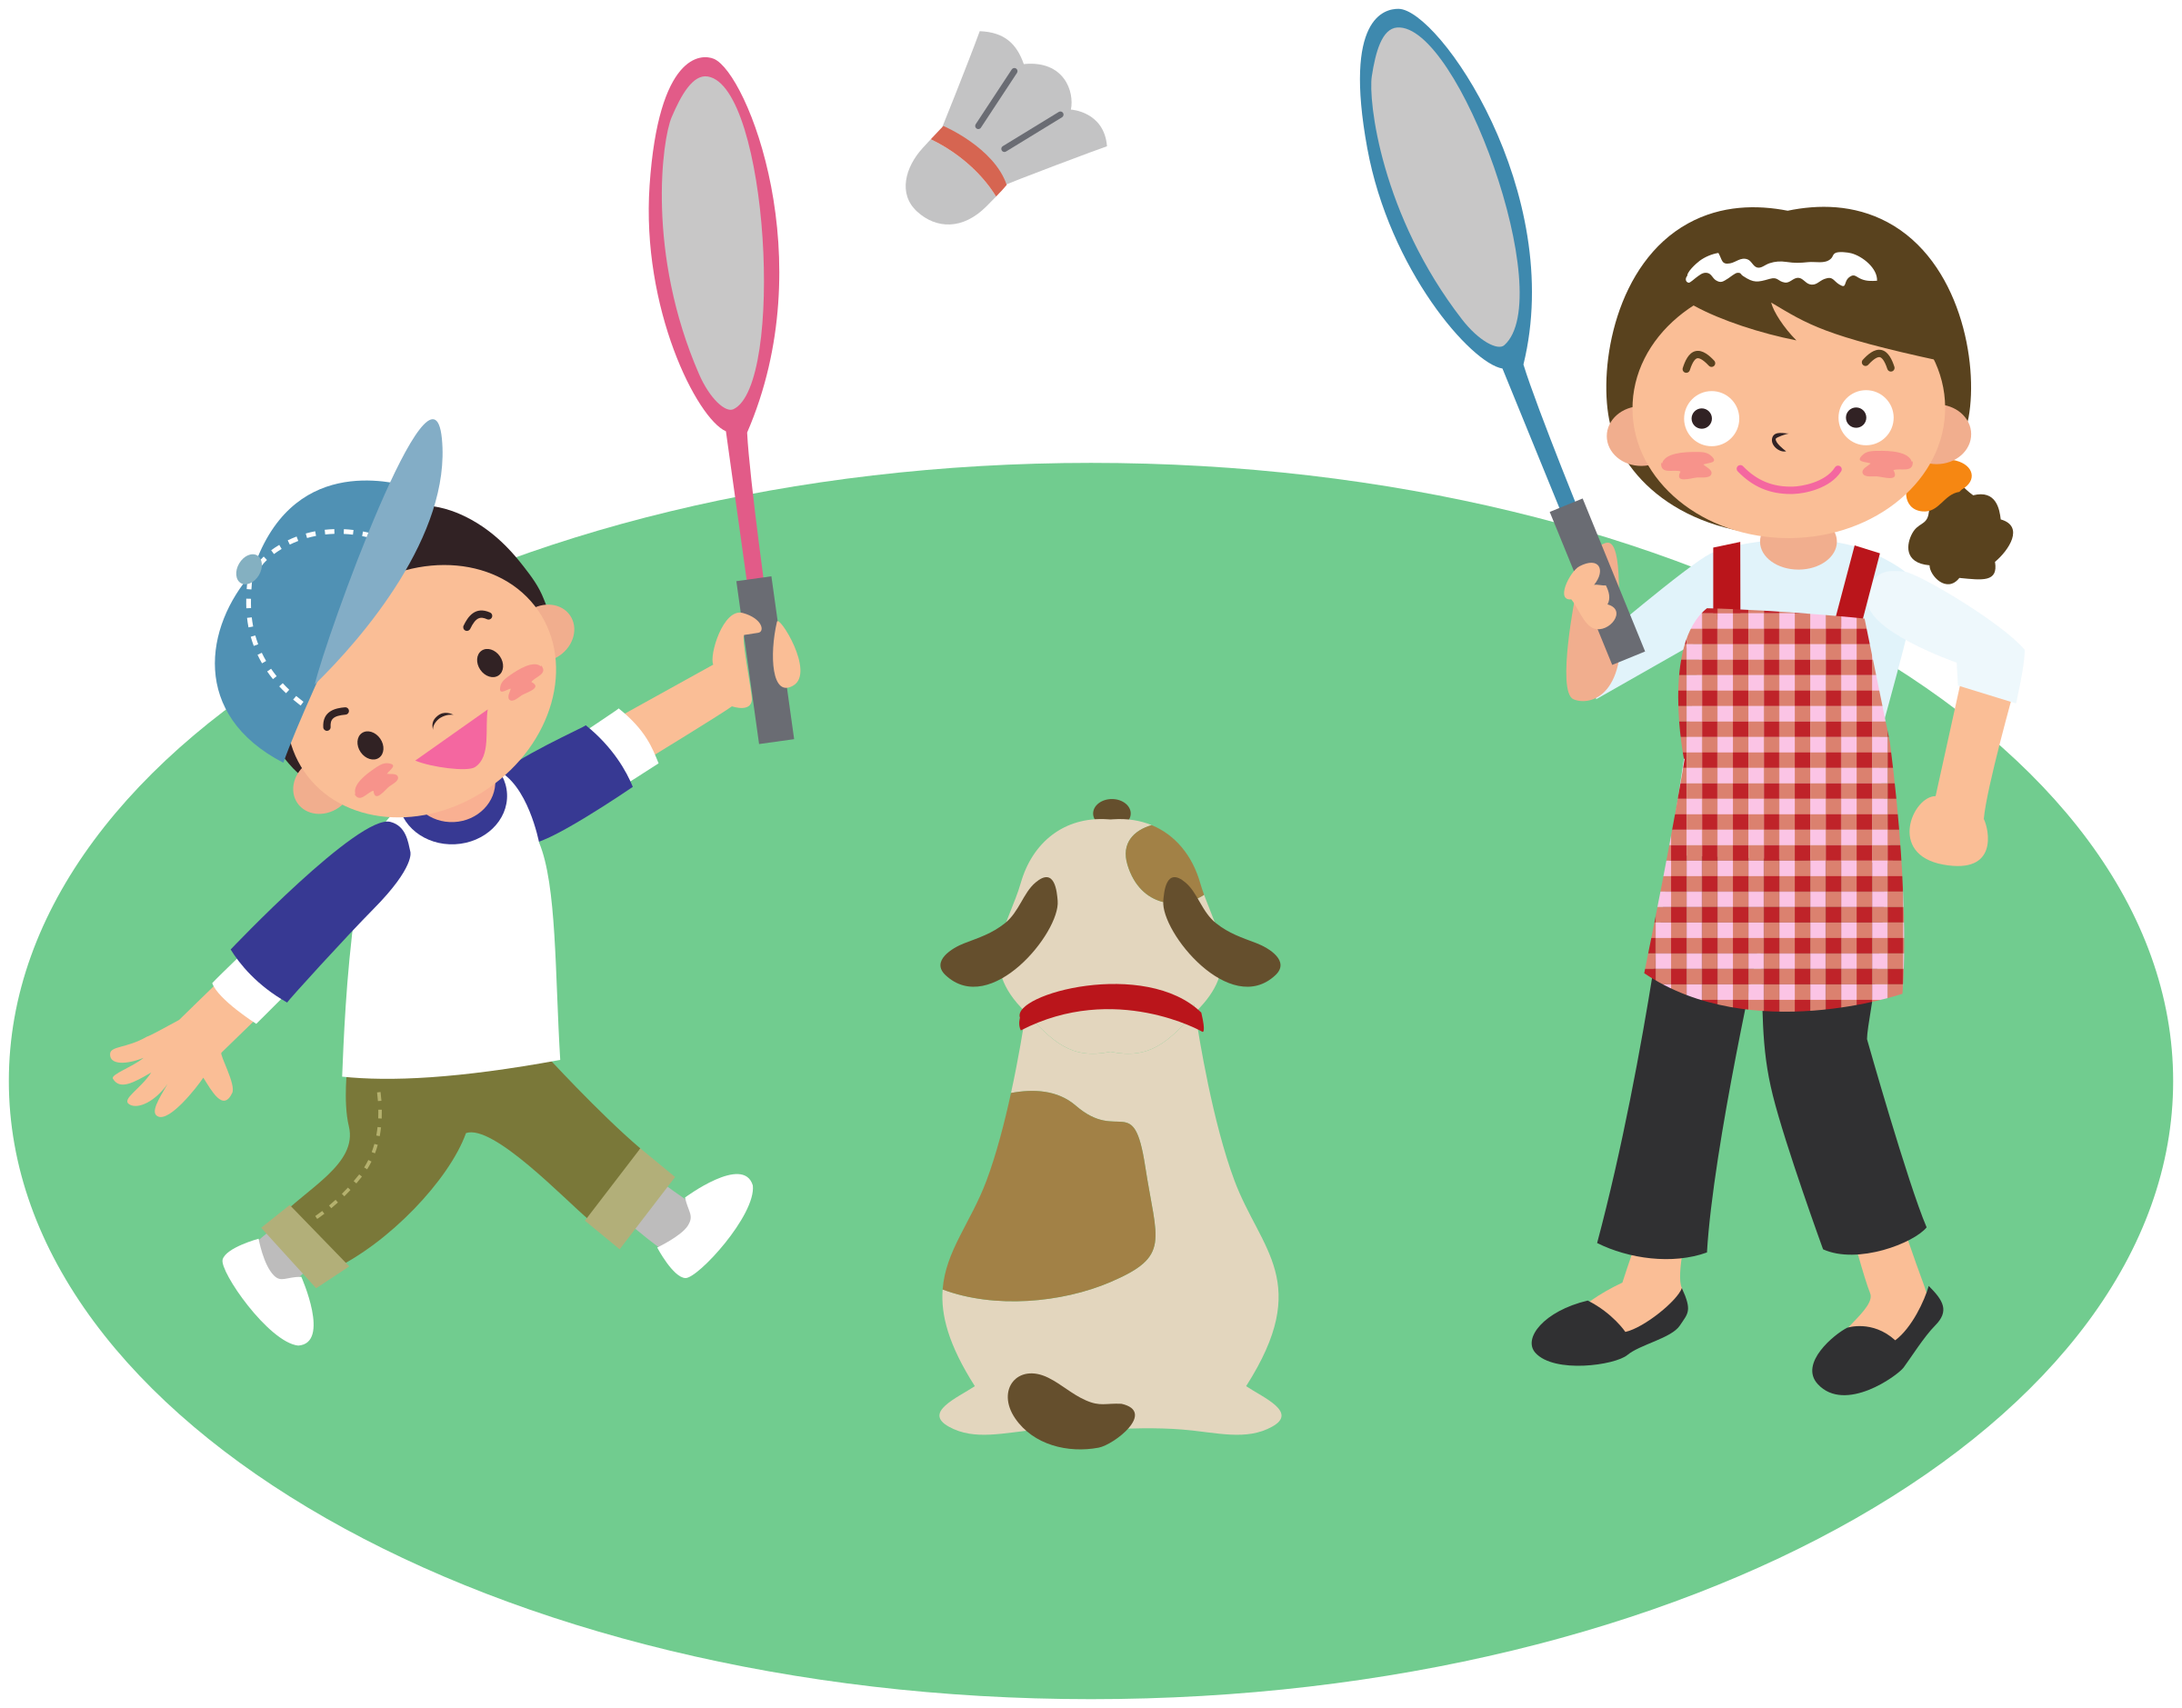 Child and dog clipart clipart library download Clipart - Mother plays badminton with son and dog clipart library download